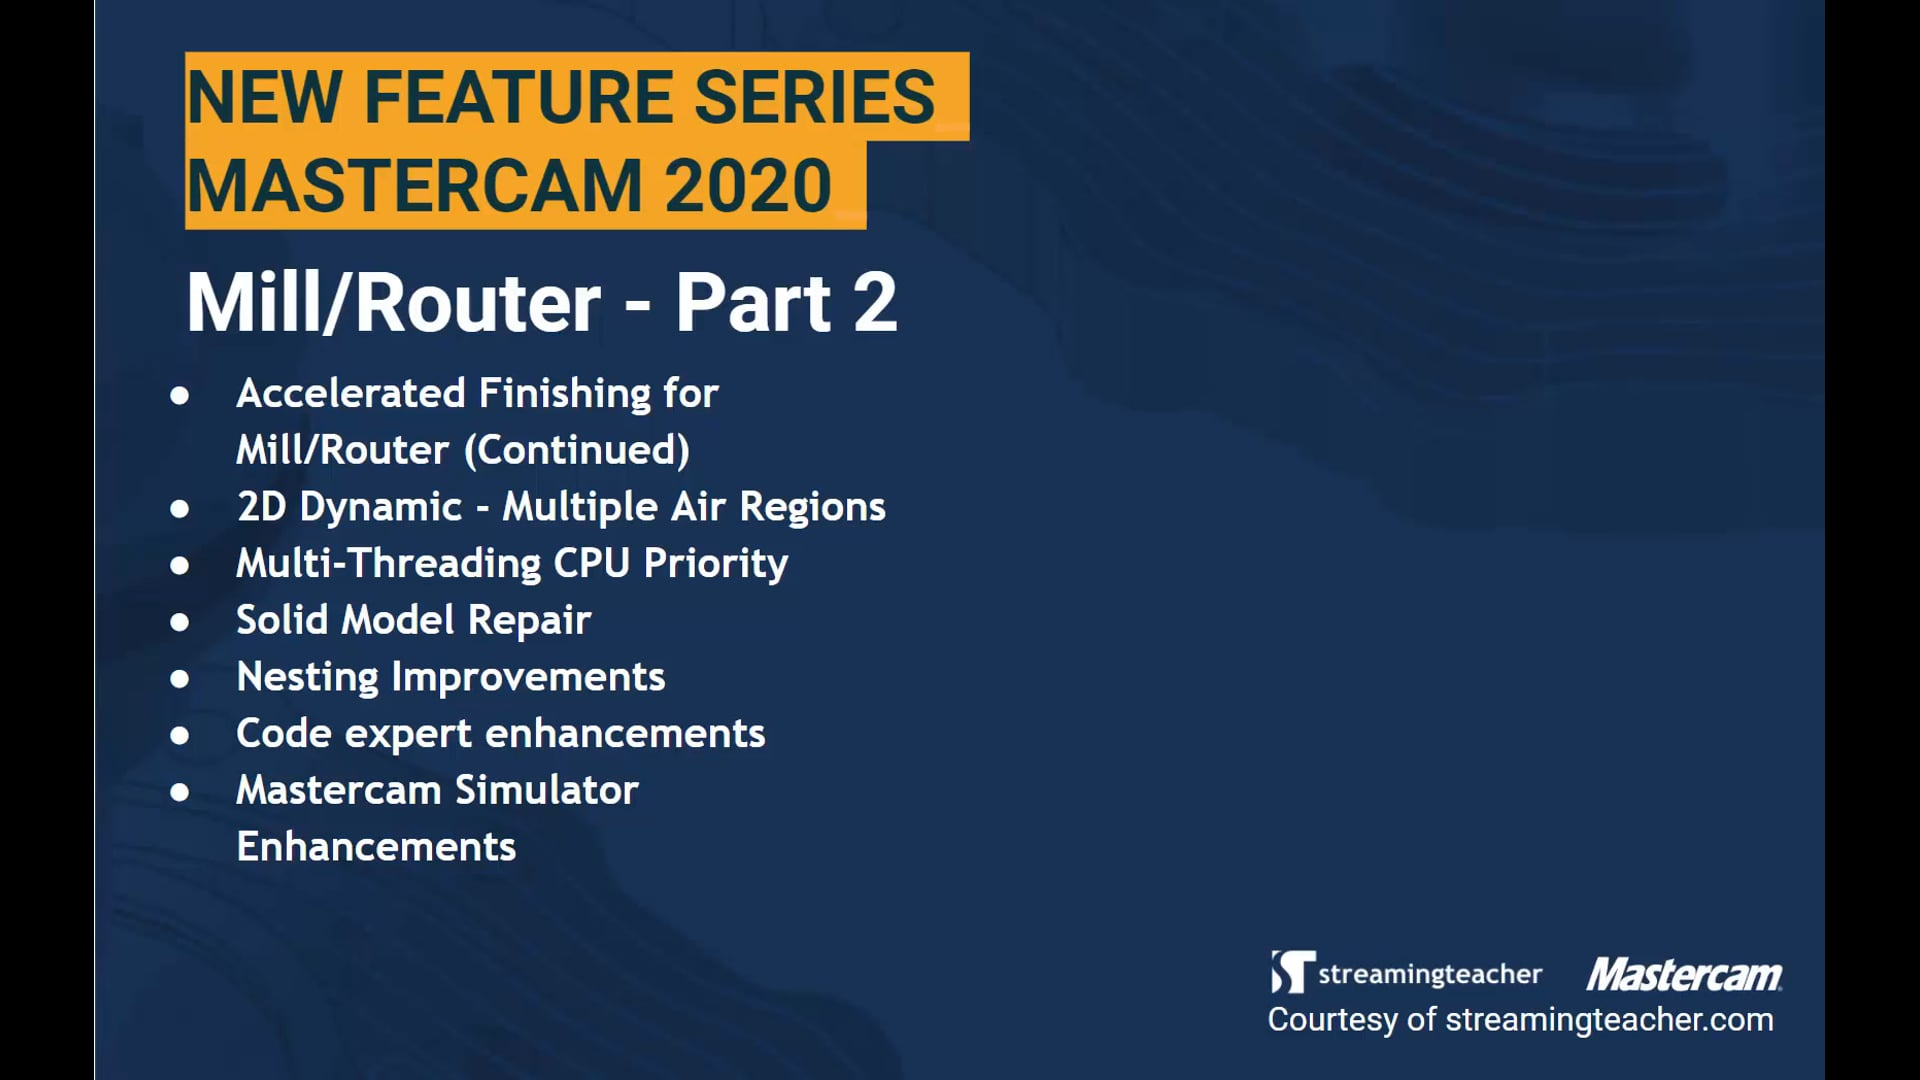 2020 New Feature Series - Mill Part 2